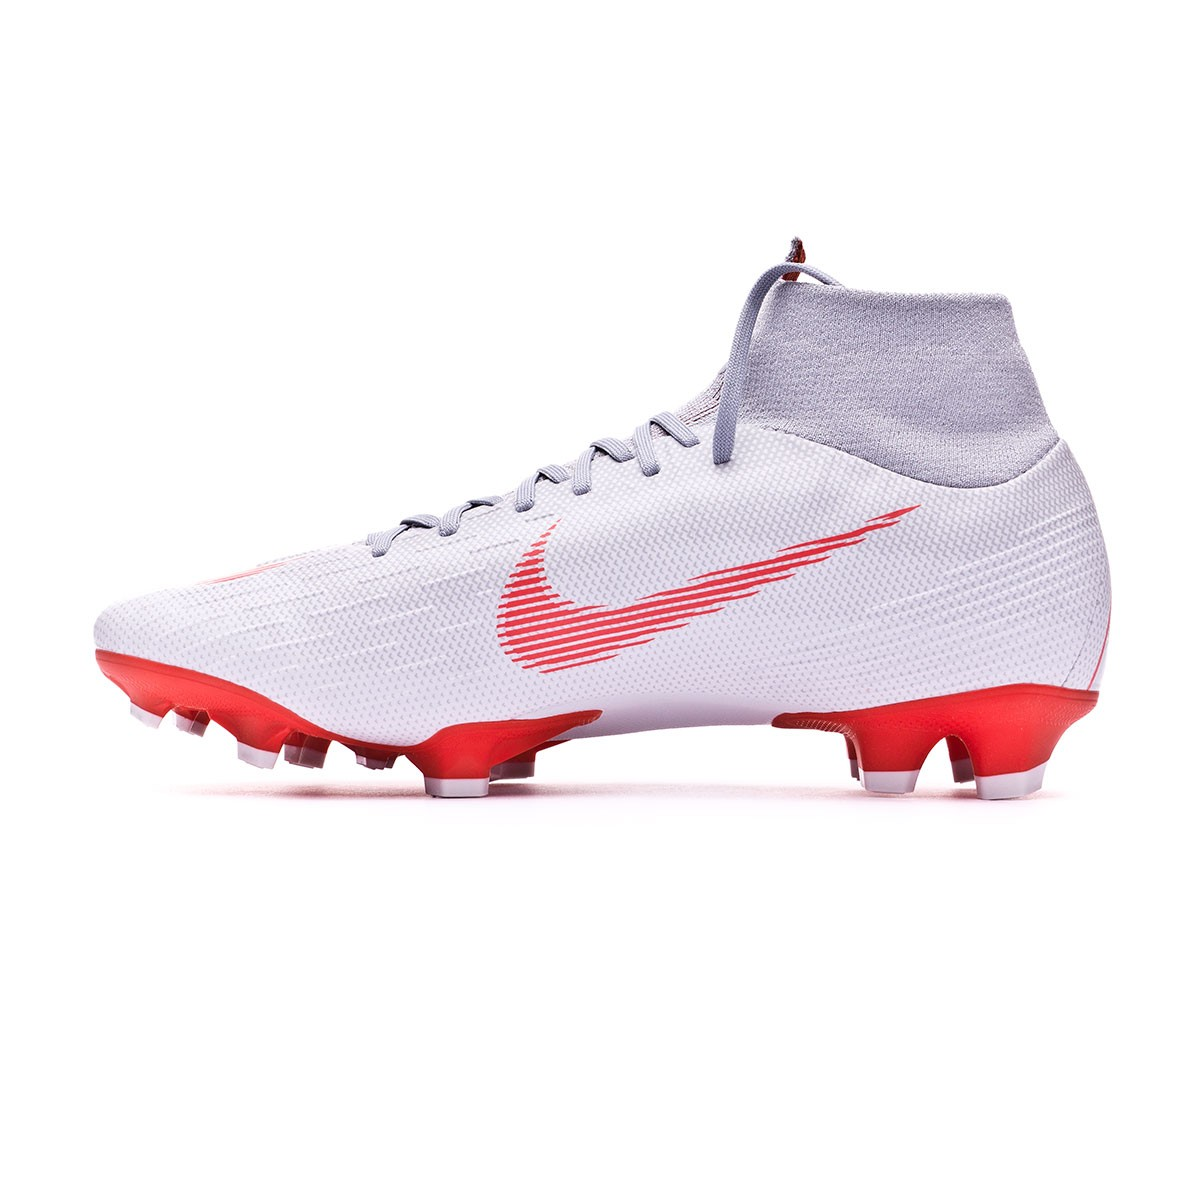 5b71f3054d35 Boot Nike Mercurial Superfly VI Pro FG Wolf grey-Light crimson-Pure  platinum - Leaked soccer